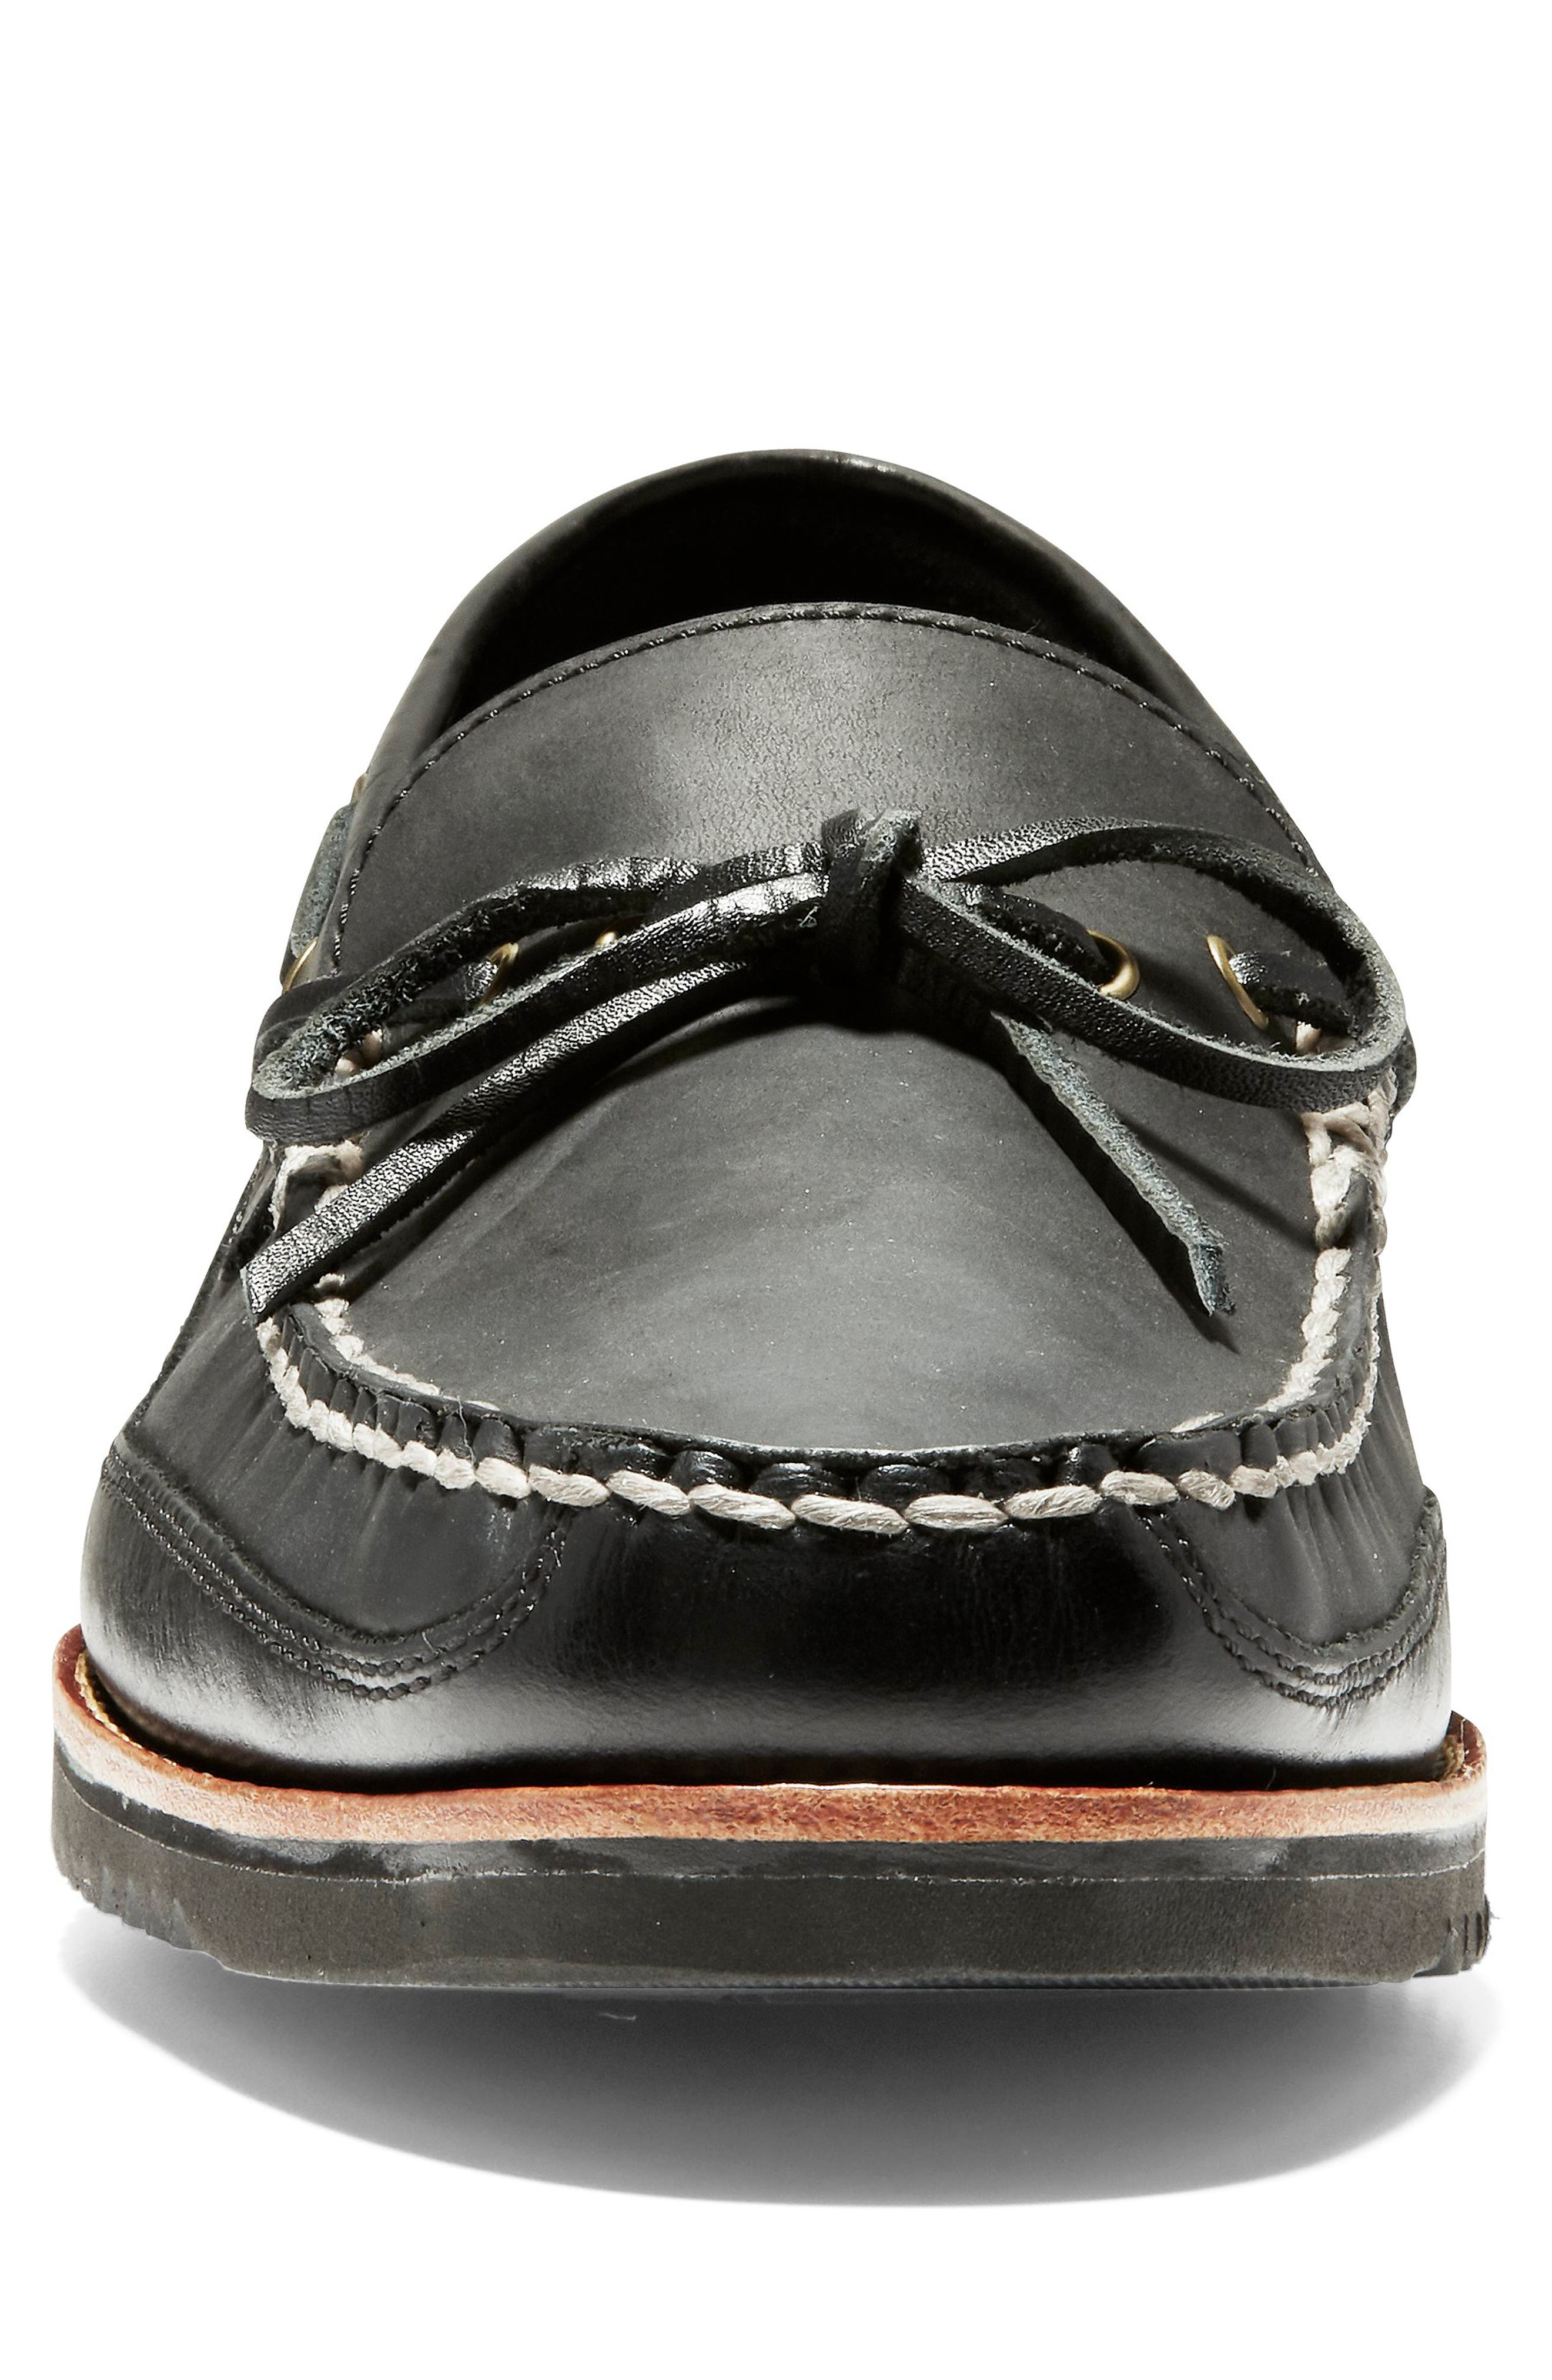 Pinch Loafer,                             Alternate thumbnail 4, color,                             001